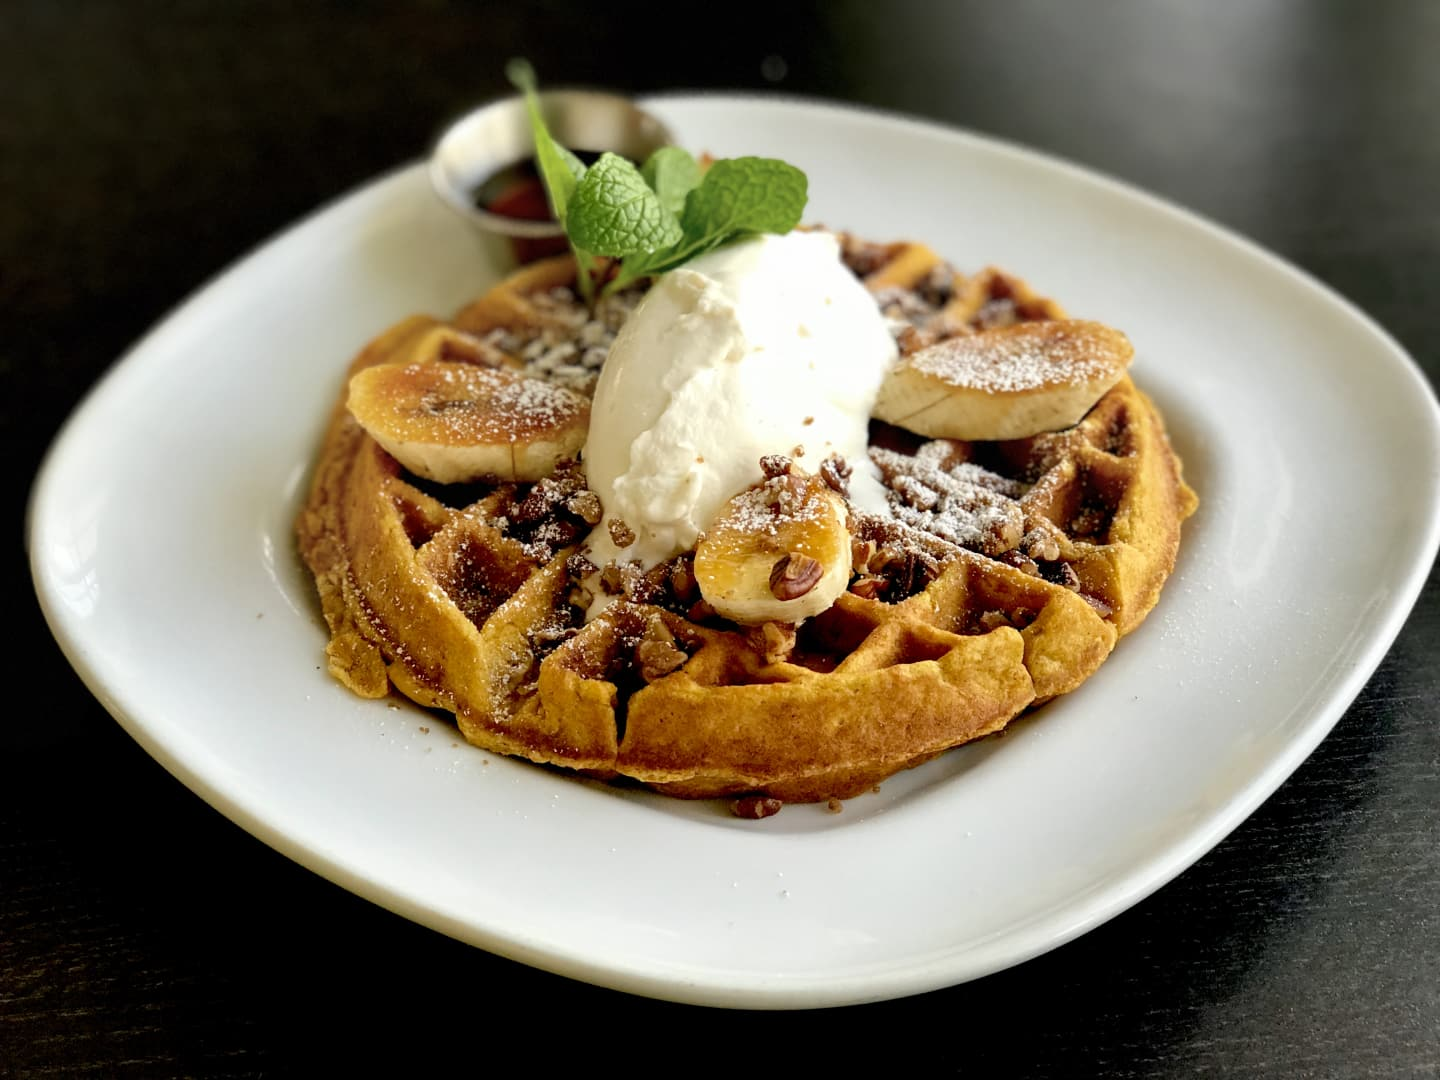 Pumpkin Oatmeal Waffle w/ Caramelized Bananas, Candied Pecans & Real Maple Syrup